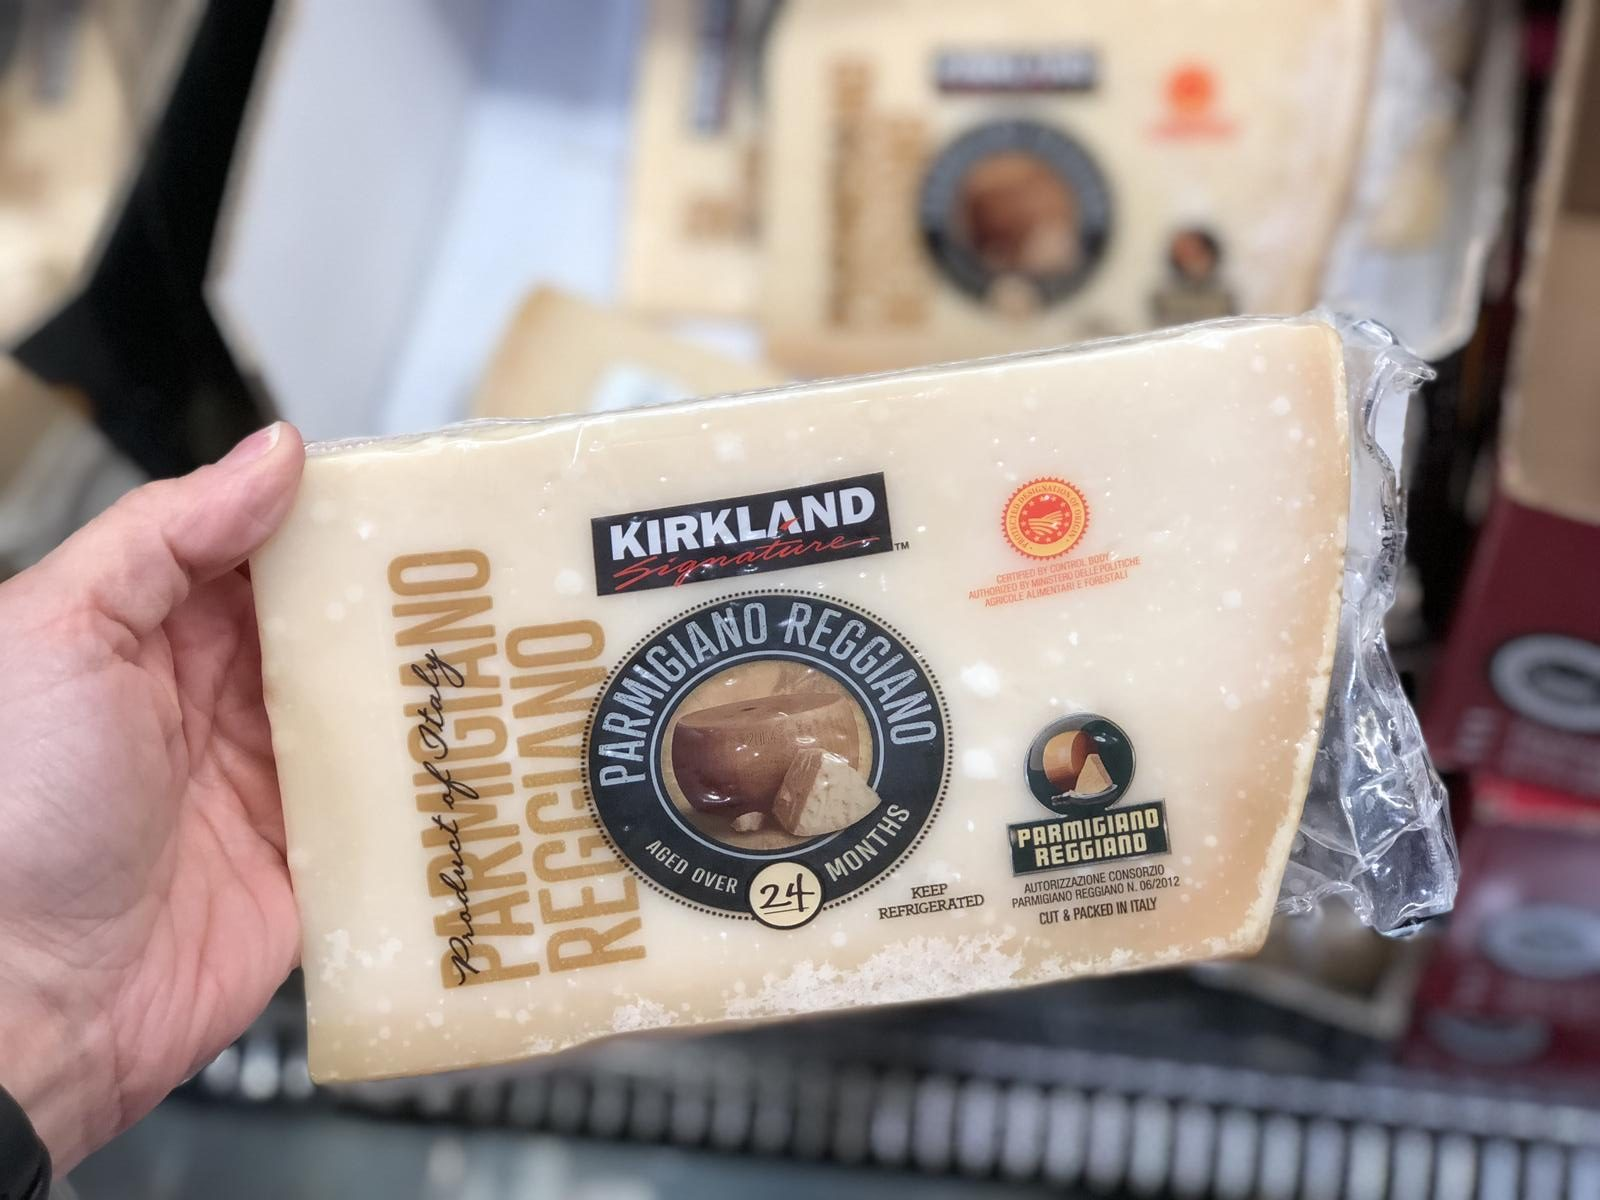 name brands sometimes make costco items, like this Cheese at Costco